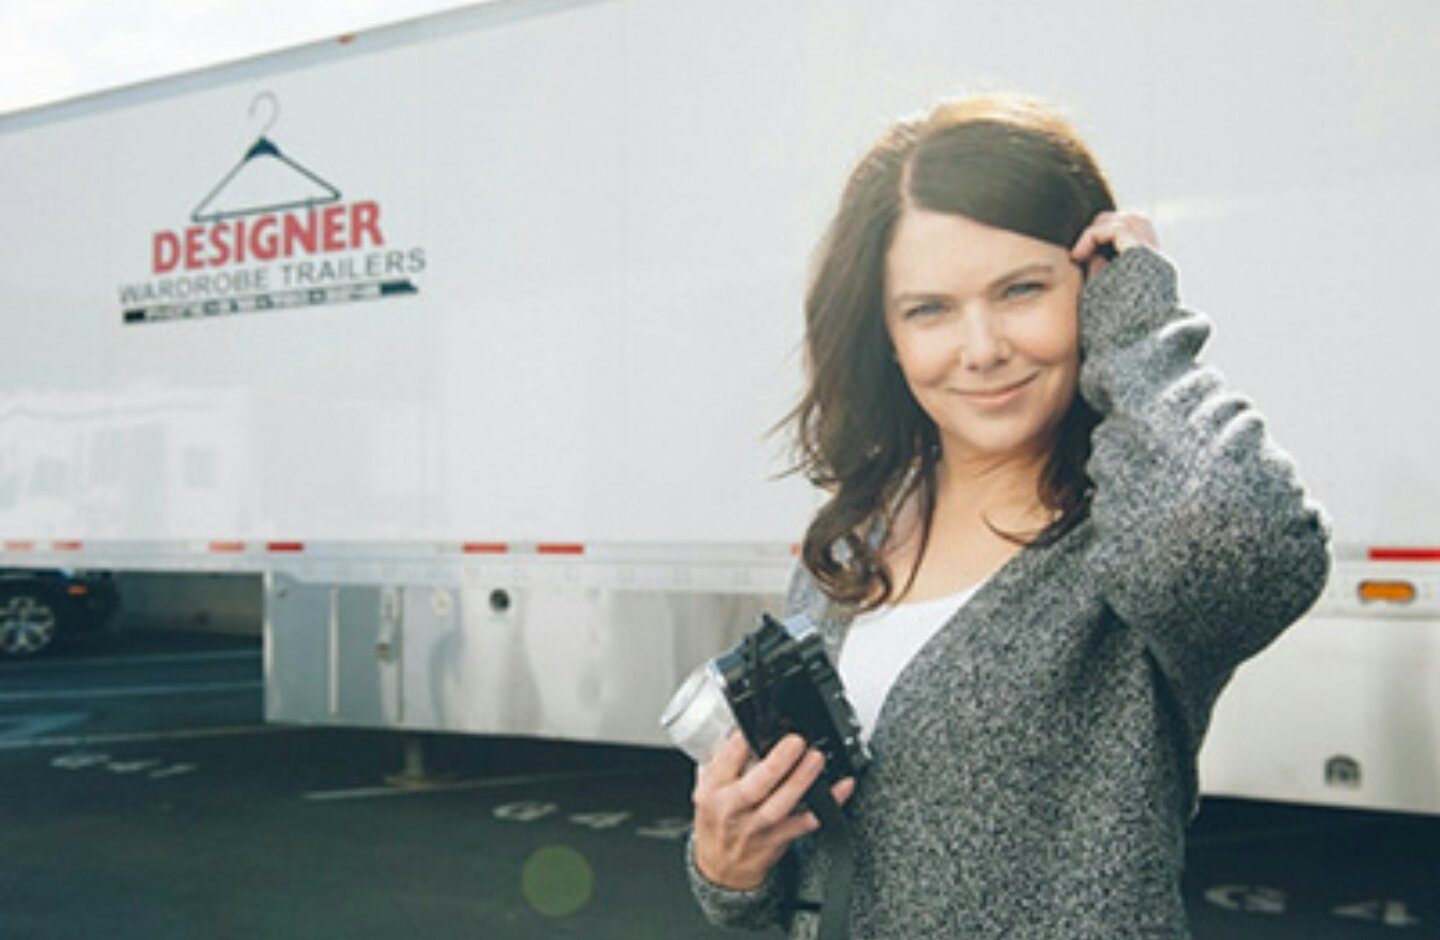 Happy birthday to the amazing human being that is lauren graham!!